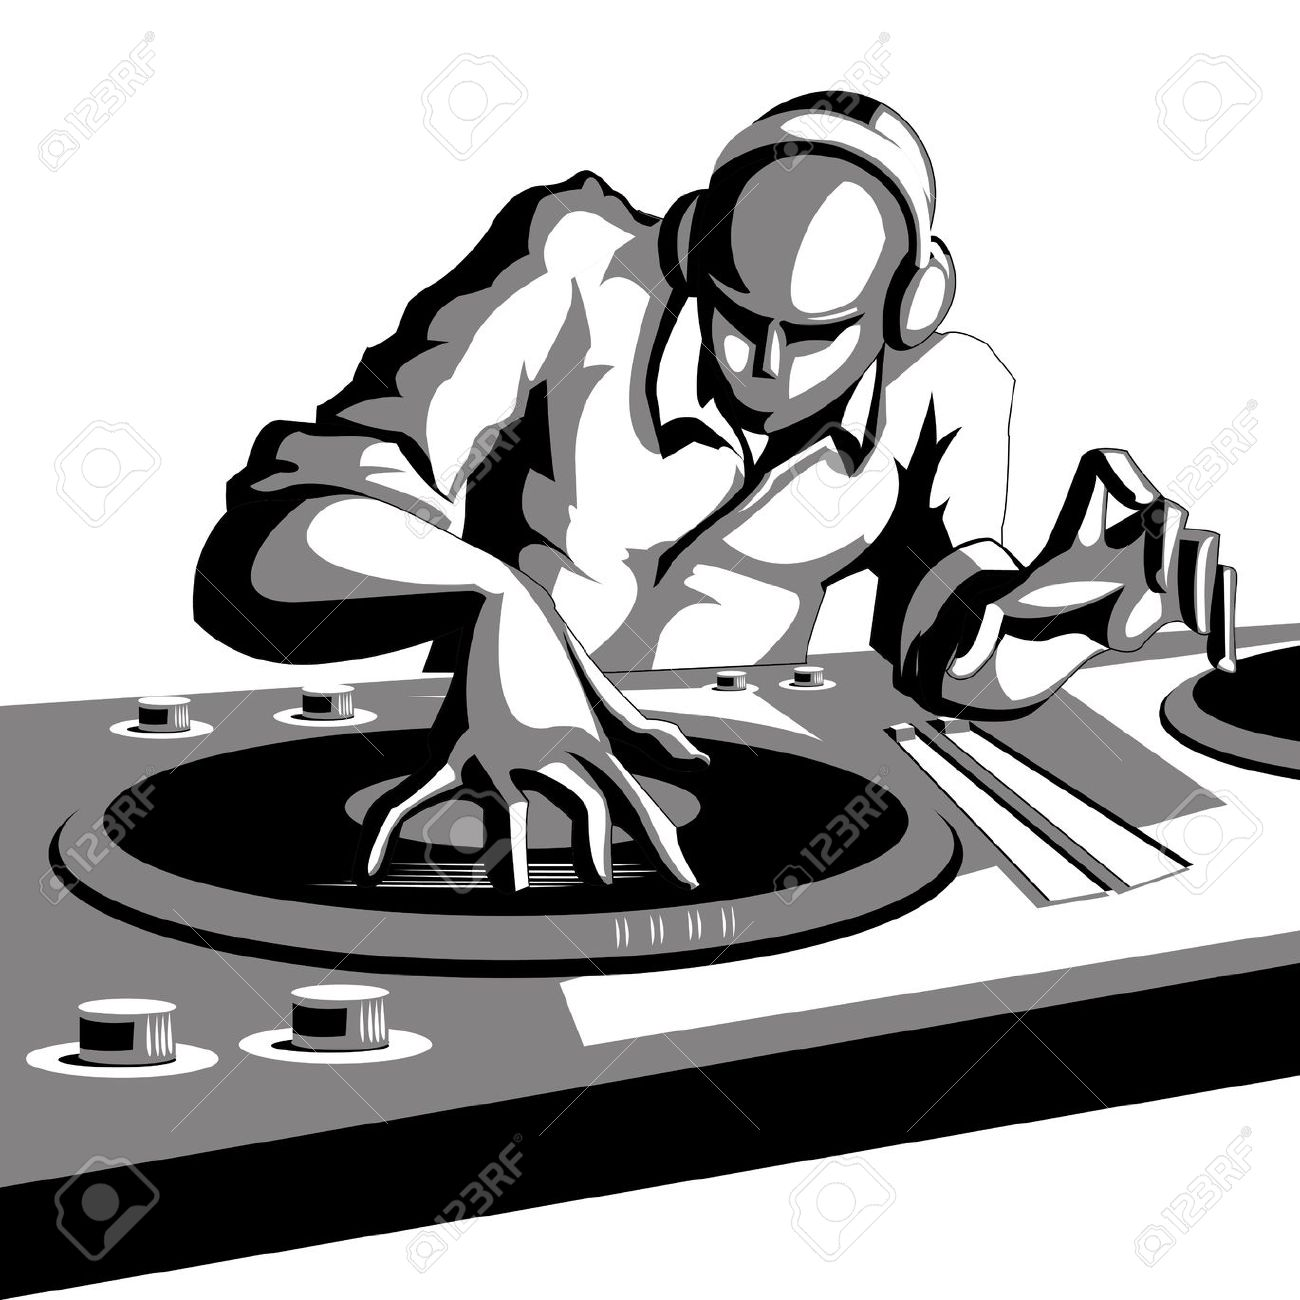 Dj mixer turntable clipart.